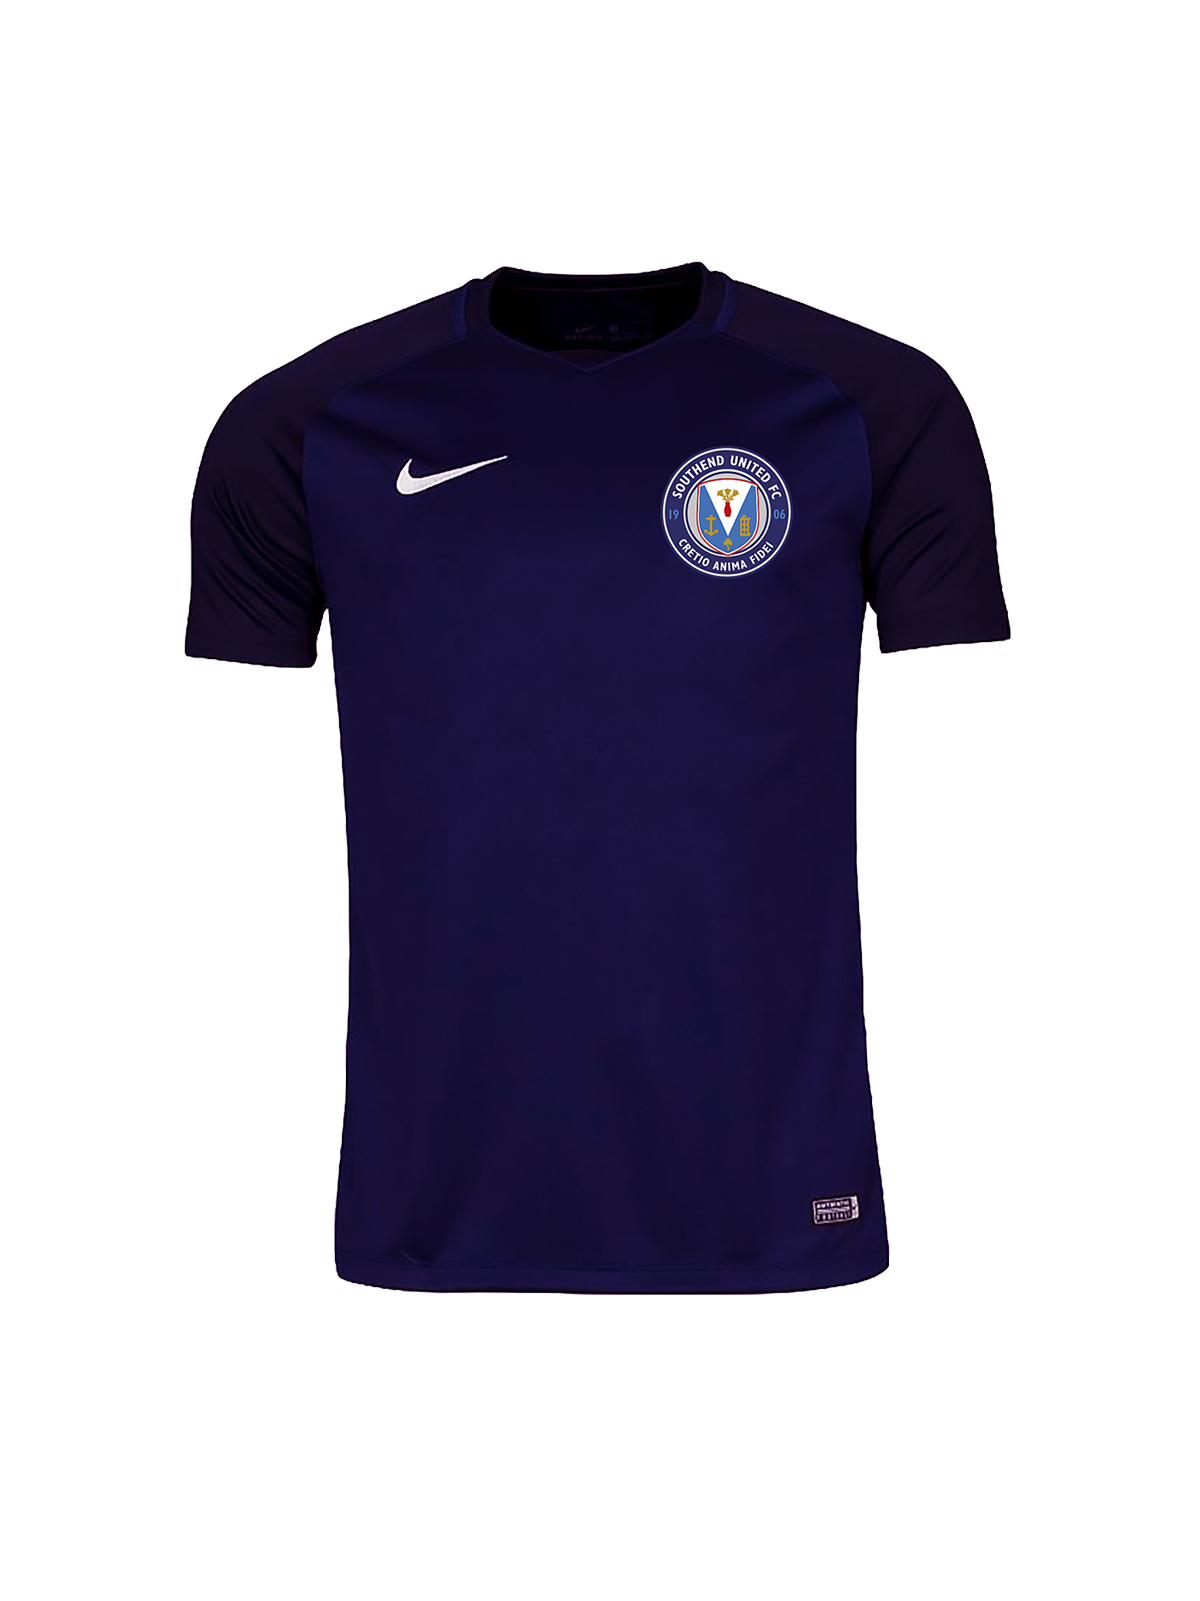 United_shirt_mock-up_02